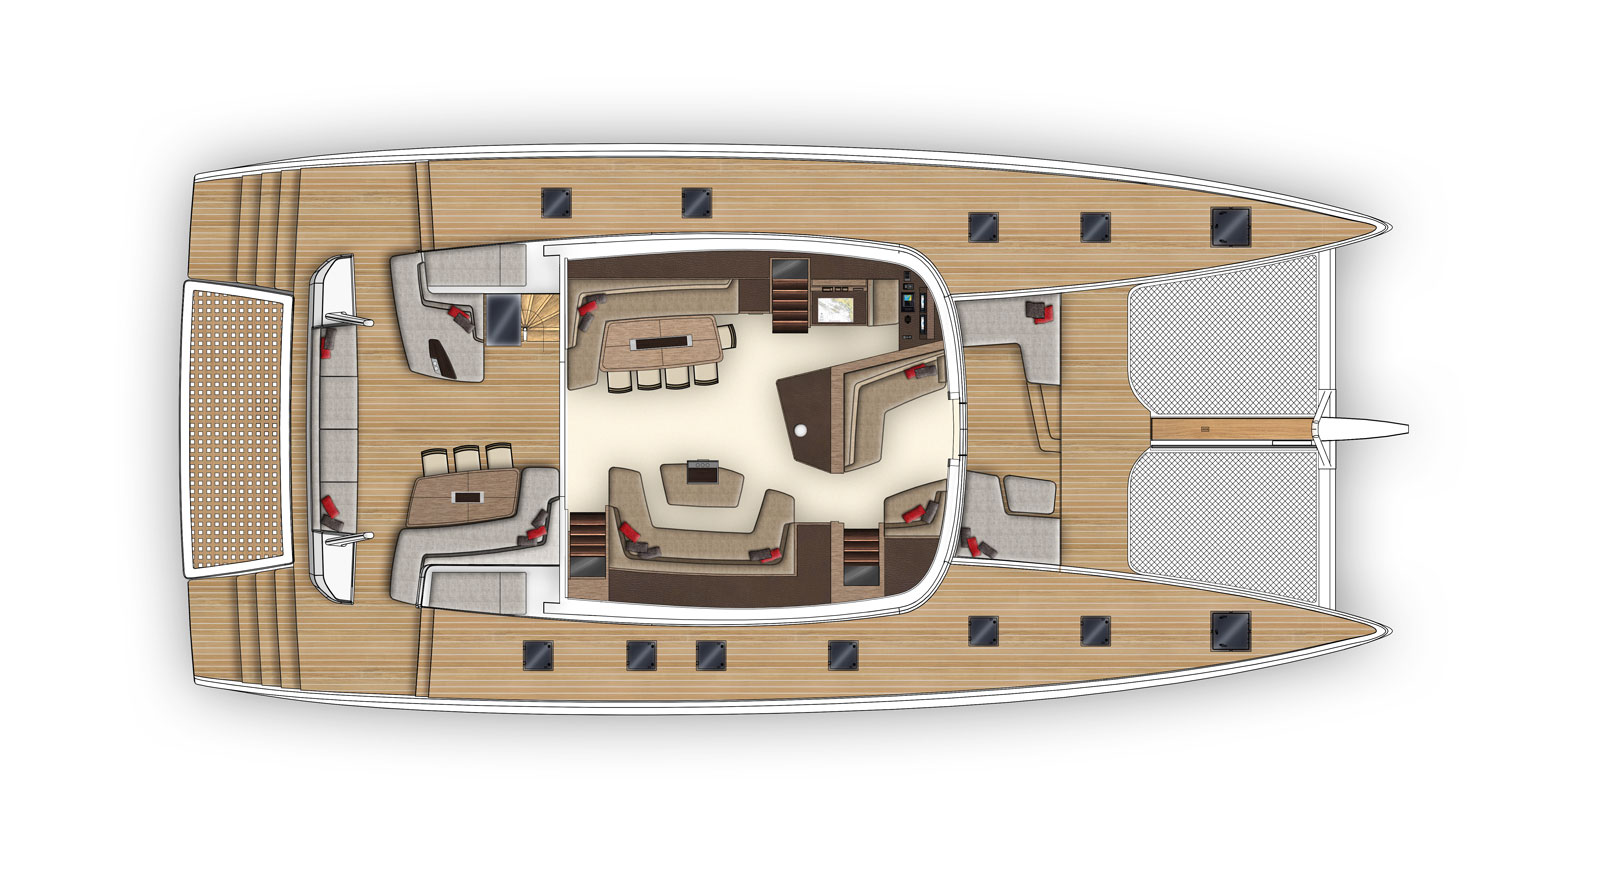 New Sail Catamaran for Sale  SEVENTY 7 Layout & Accommodations